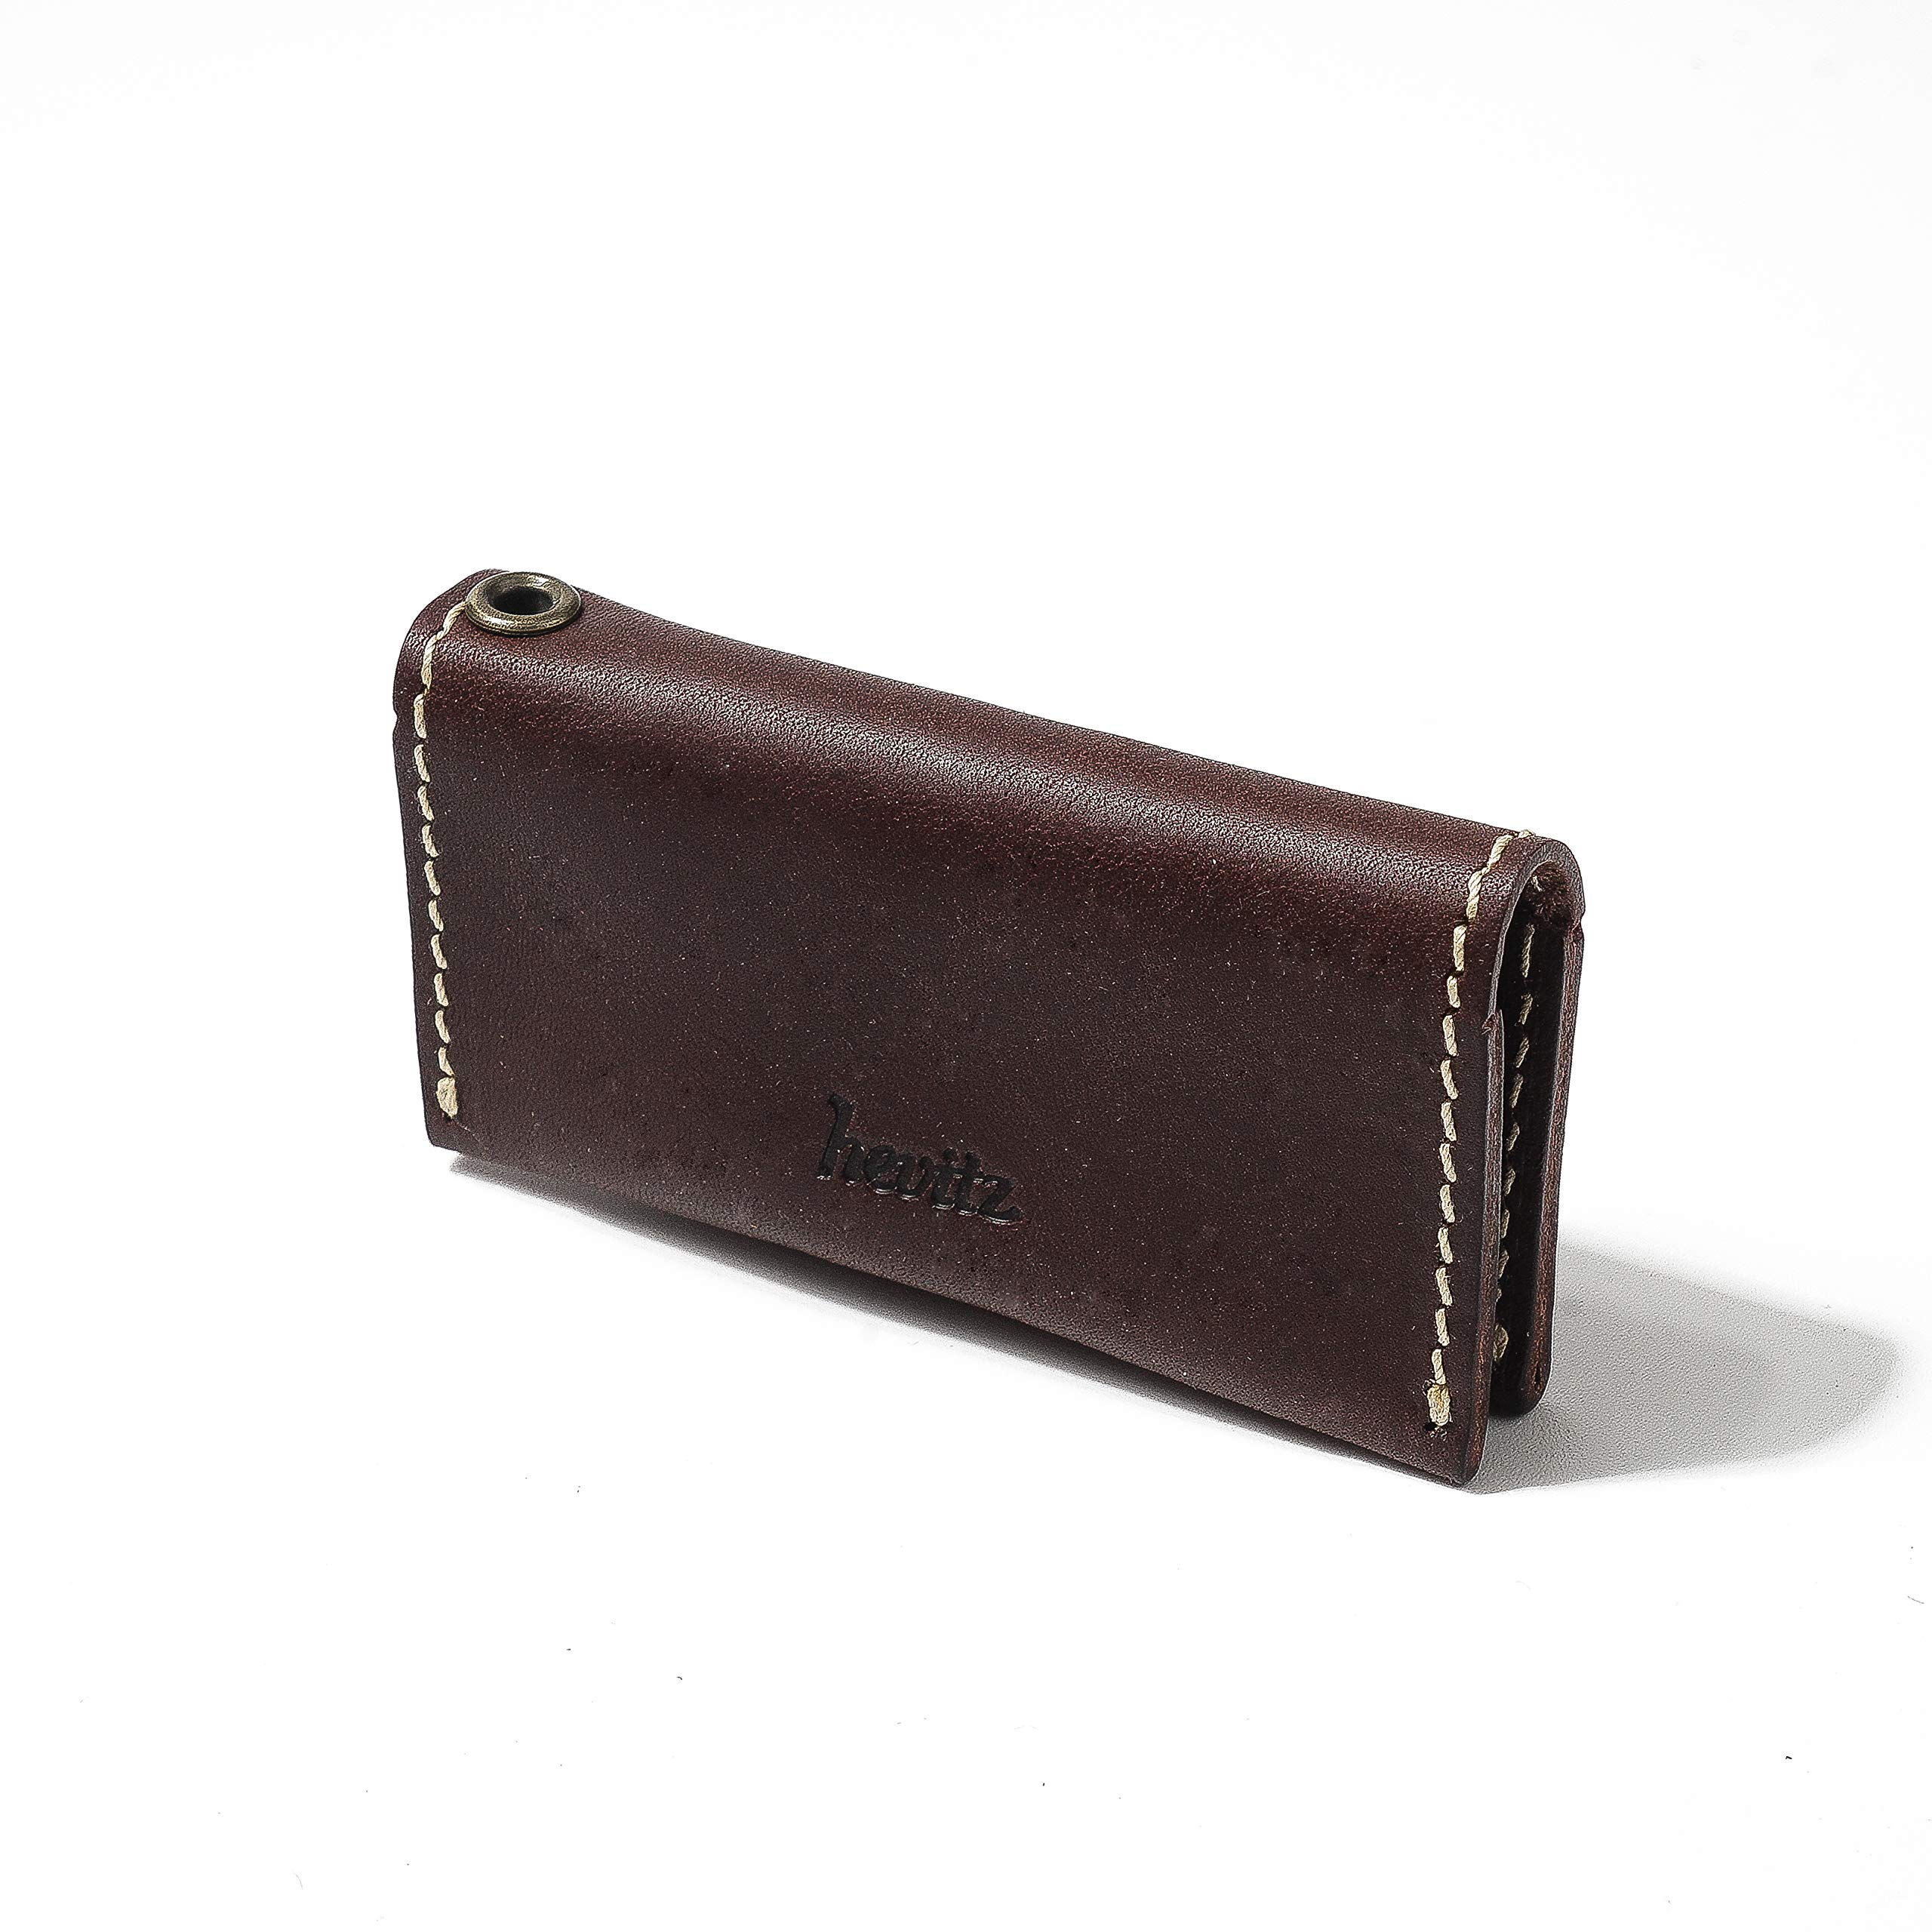 hevitz 3838 Leather Clamshell Pouch